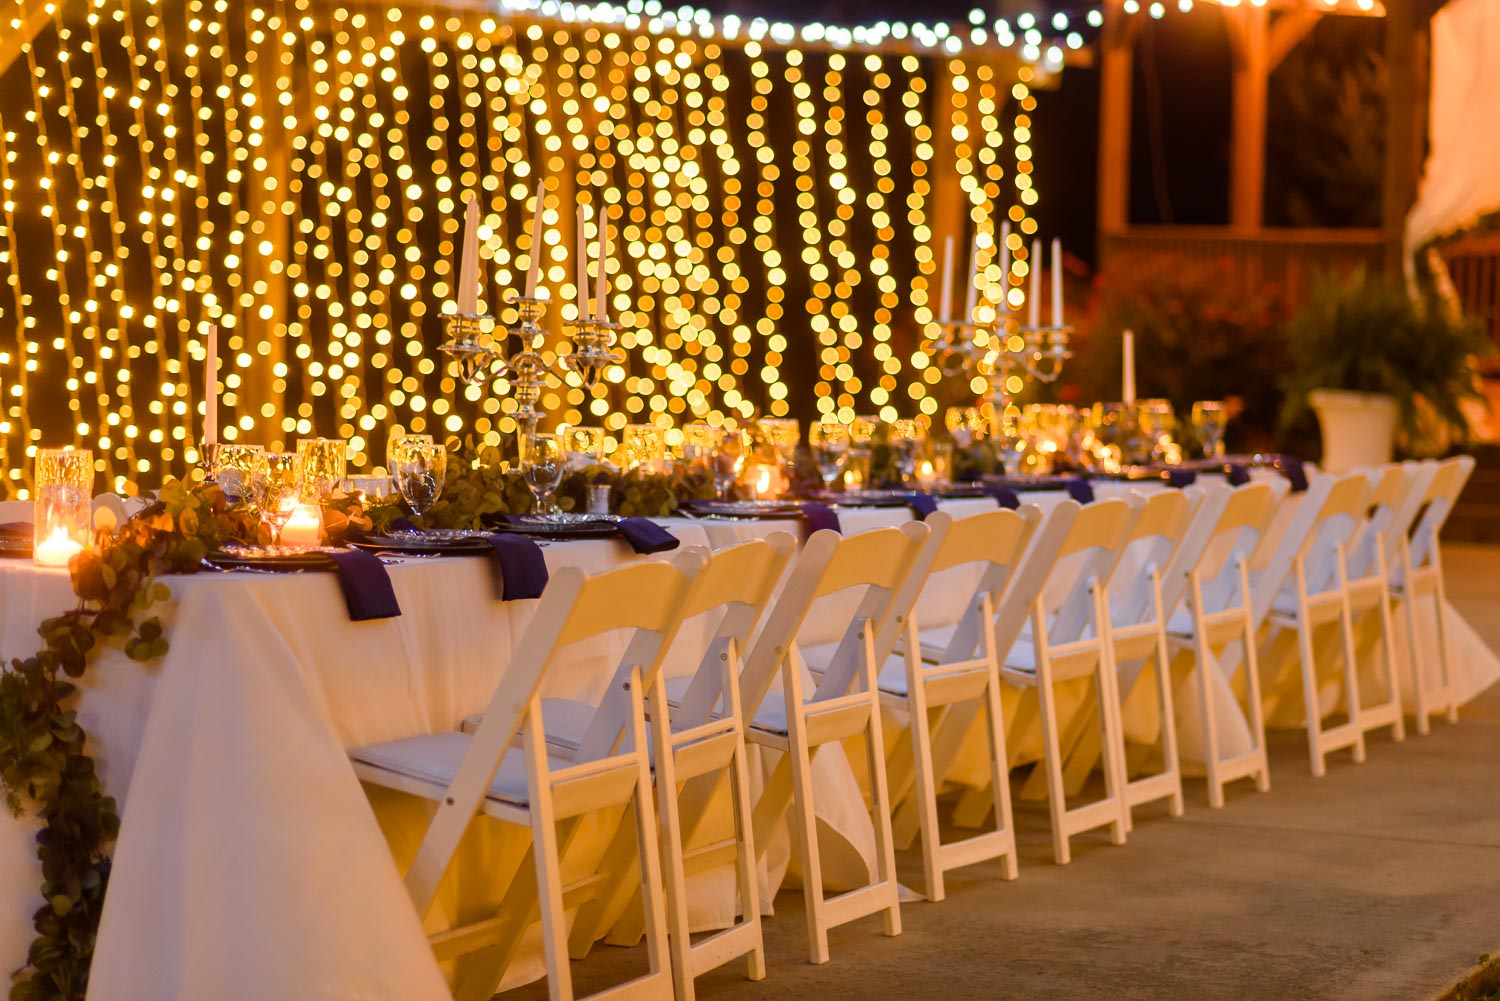 outdoor evening reception with candles and twinkly lights